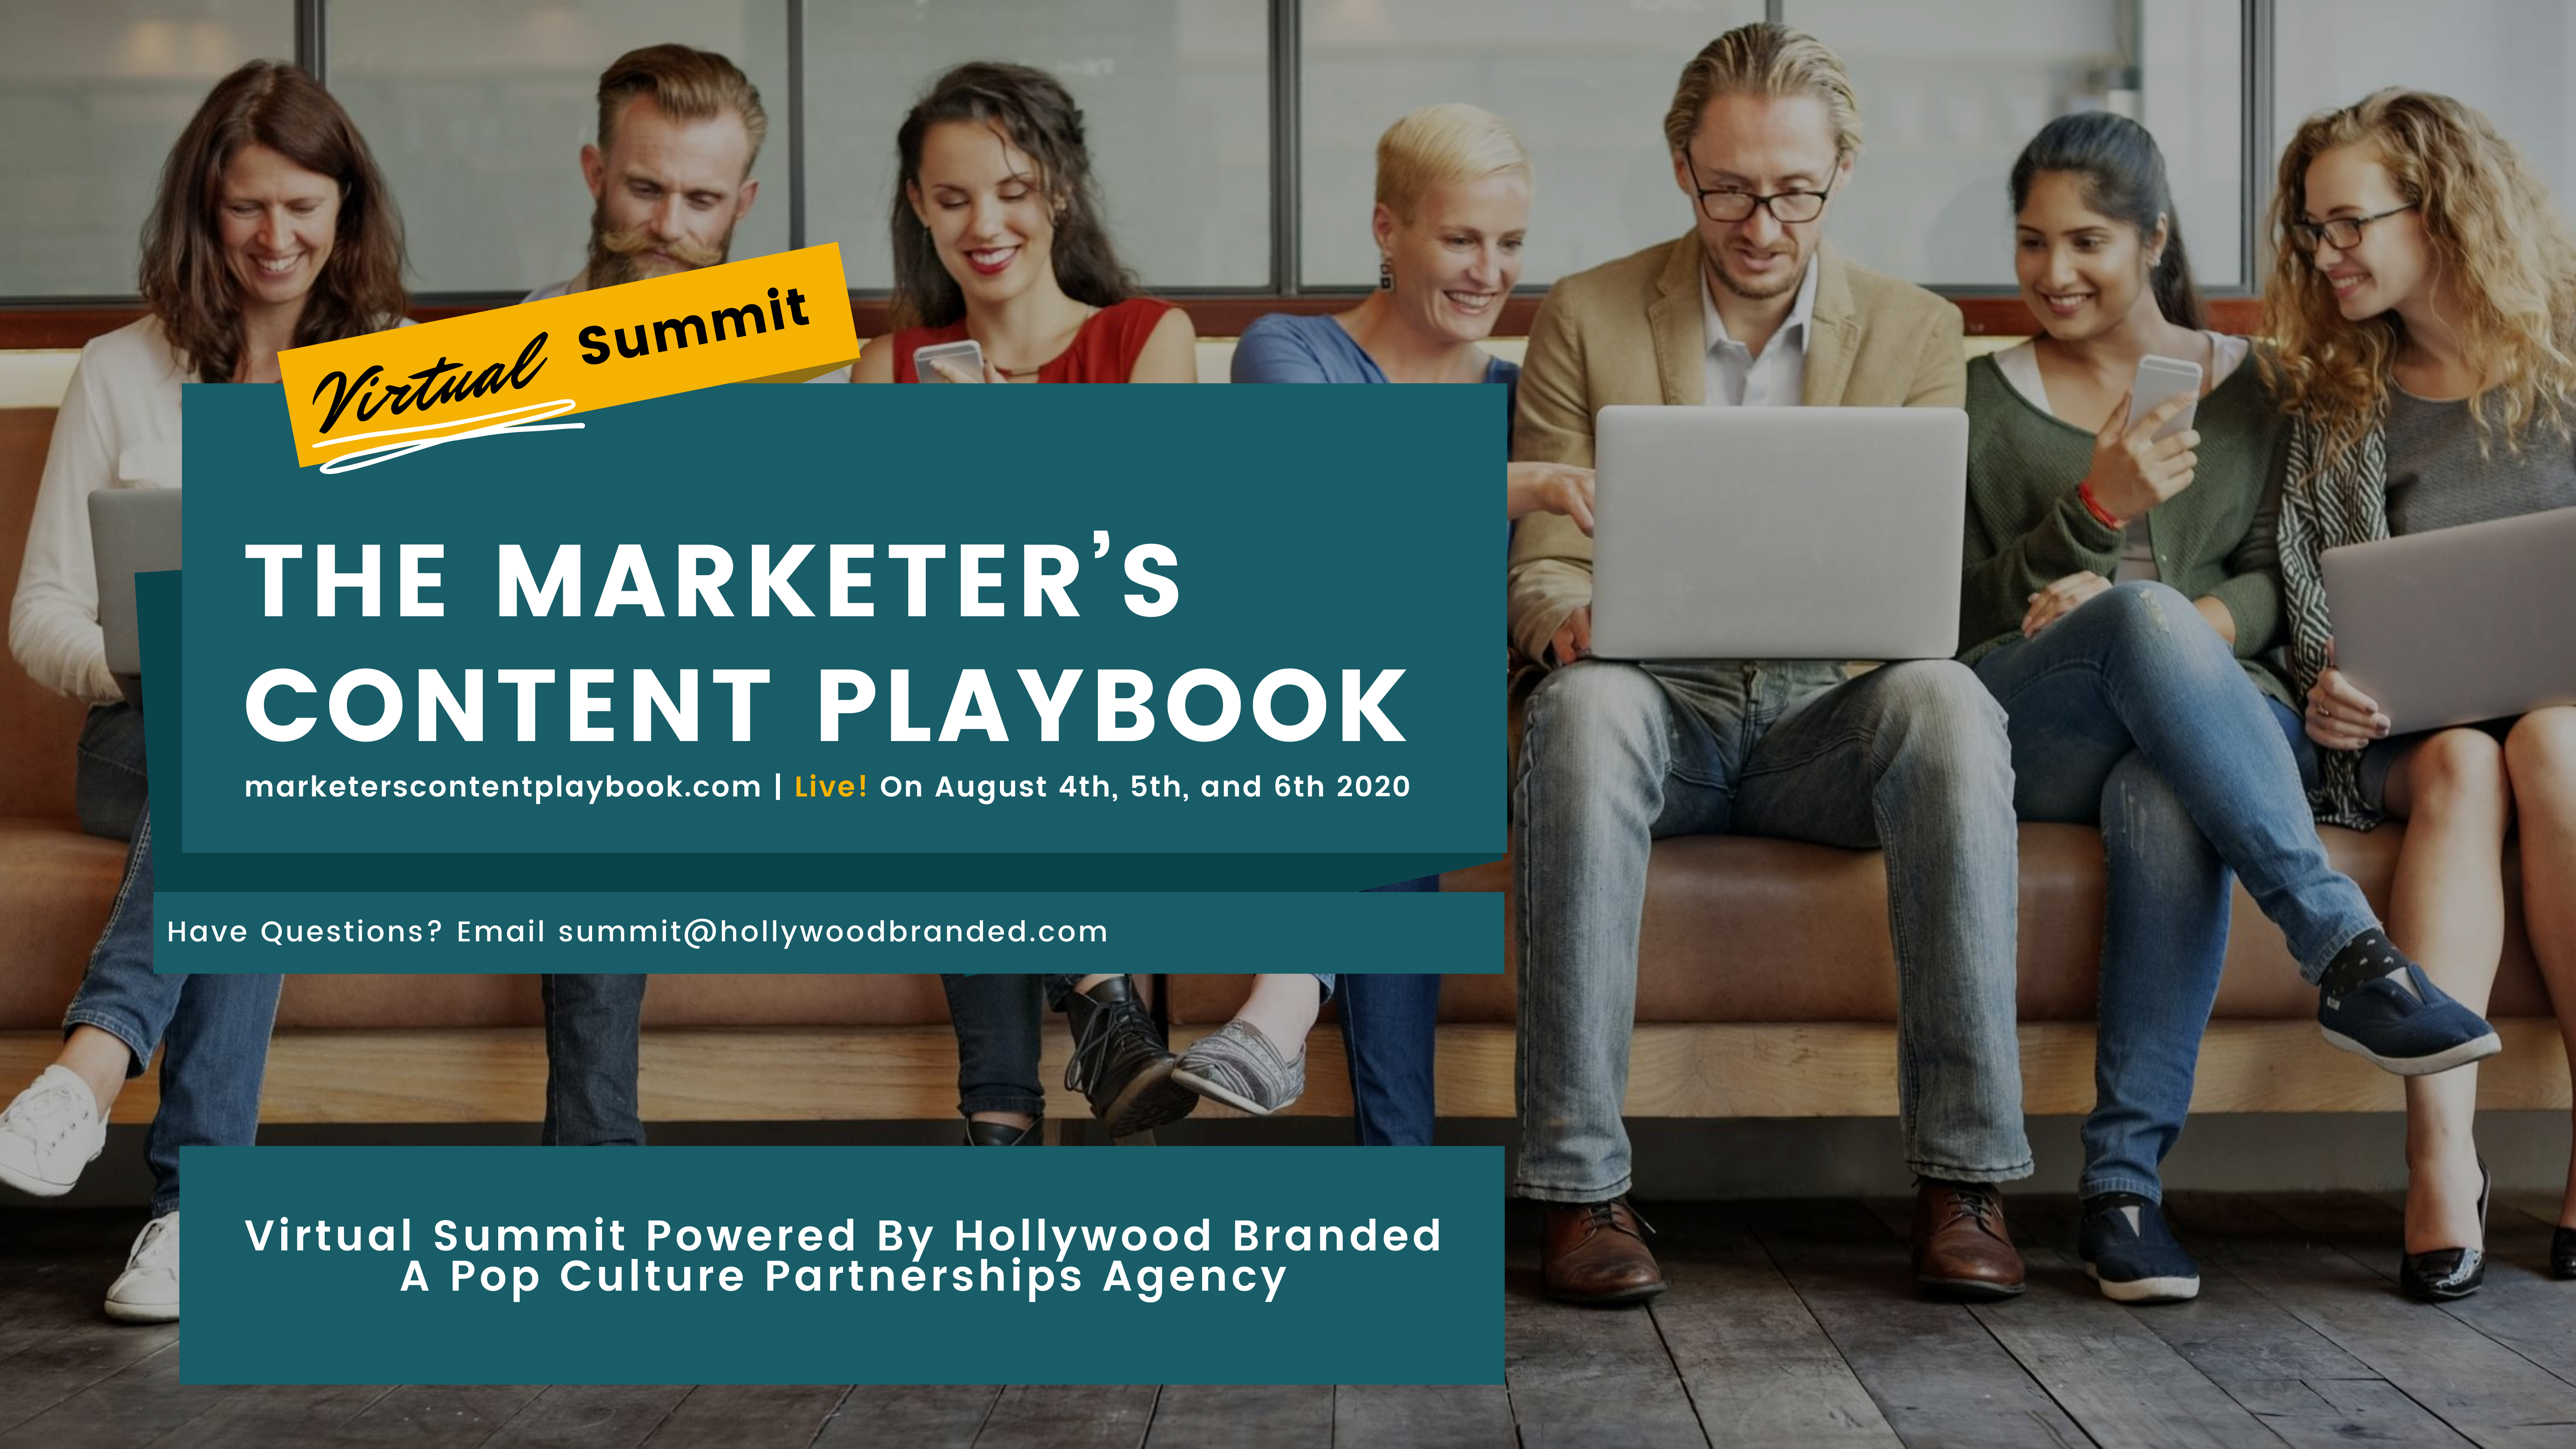 Marketers Content Playbook Virtual SummitBy Hollywood Branded